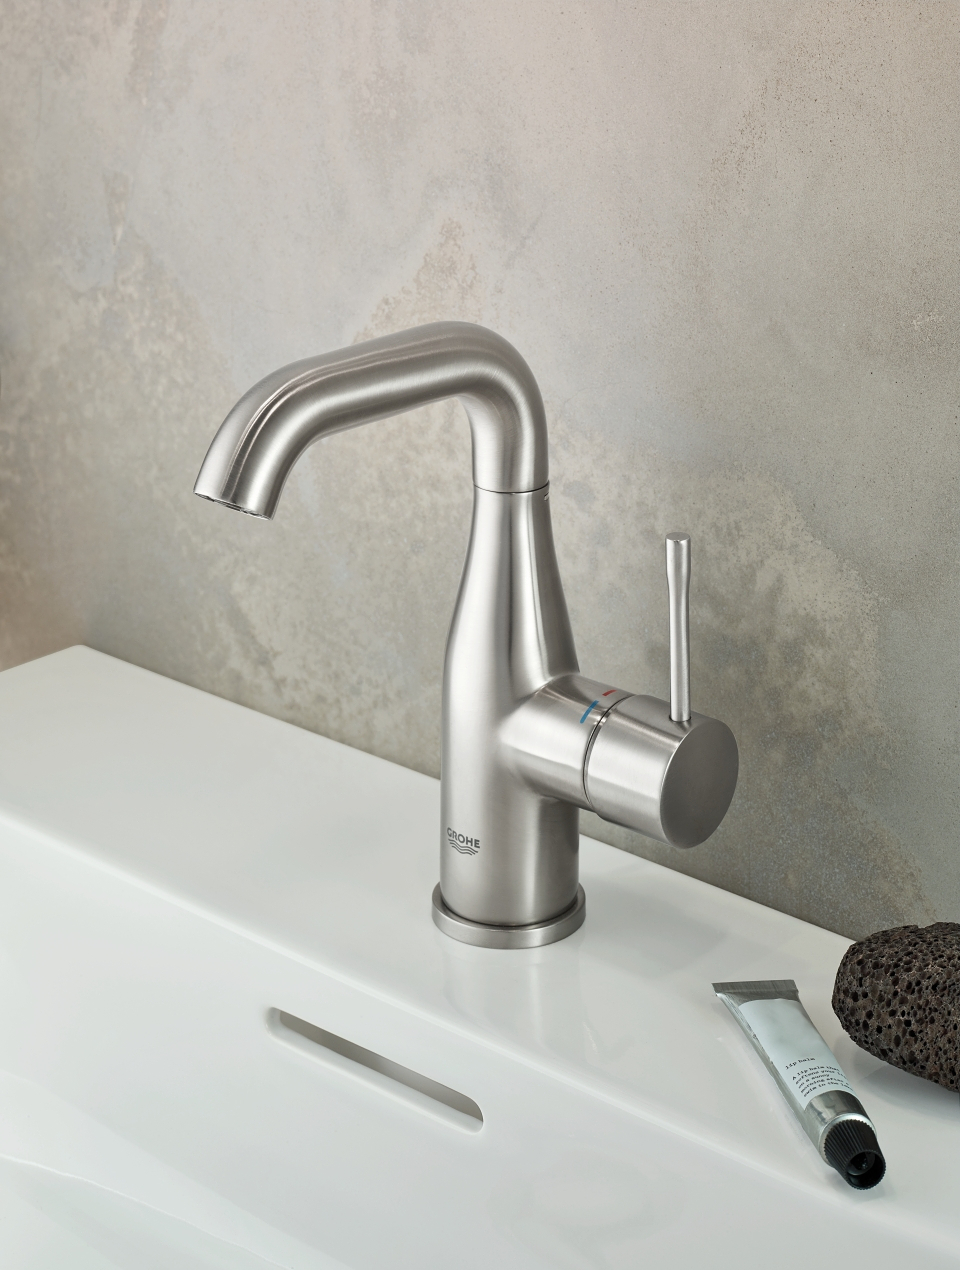 Grohe Armatur Küche Schwarz Essence Farben Grohe Colors Grohe